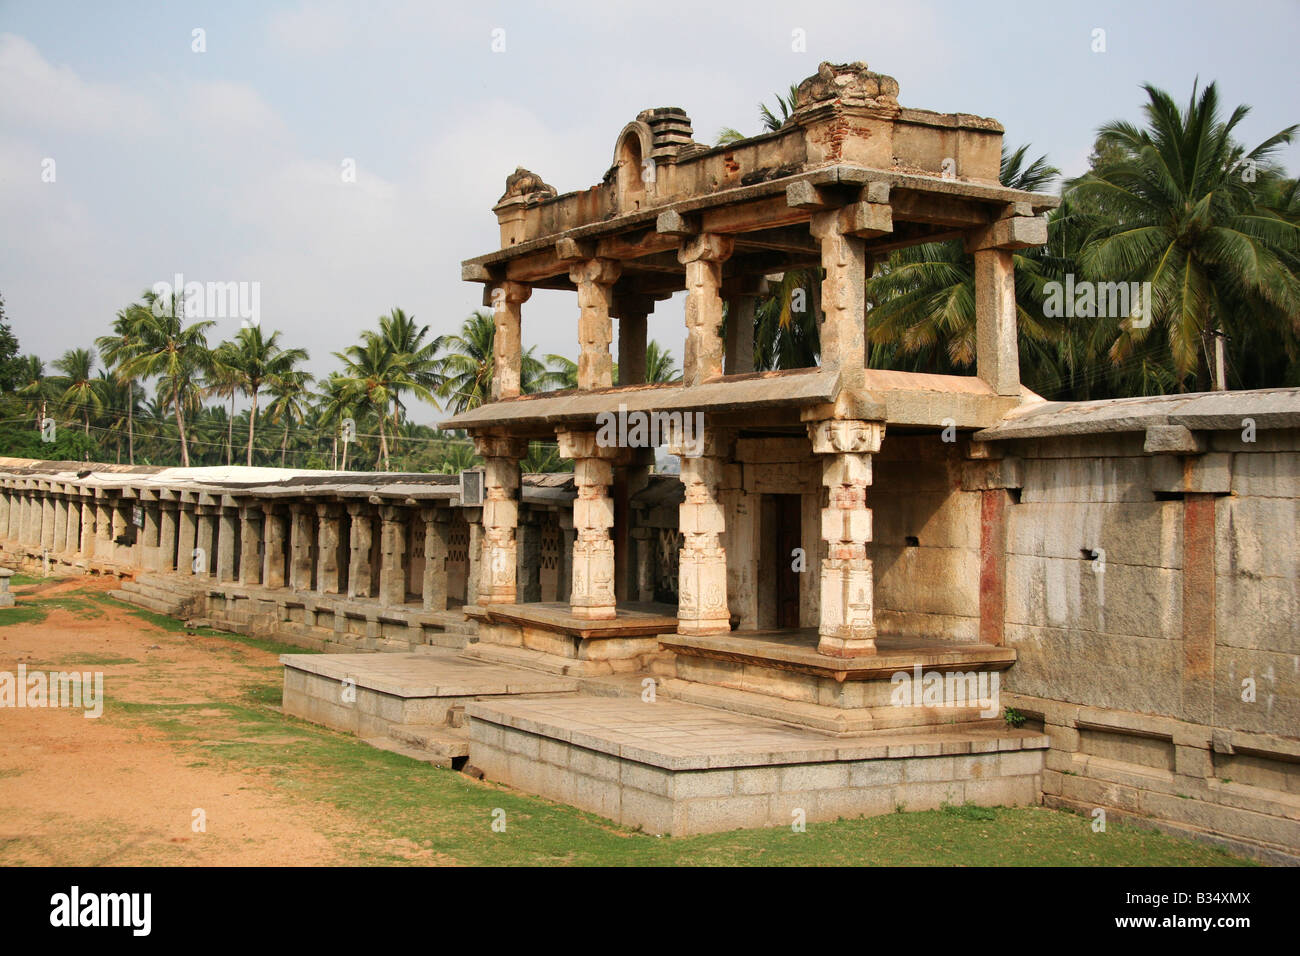 vijayanagar empire stock photos vijayanagar empire stock images